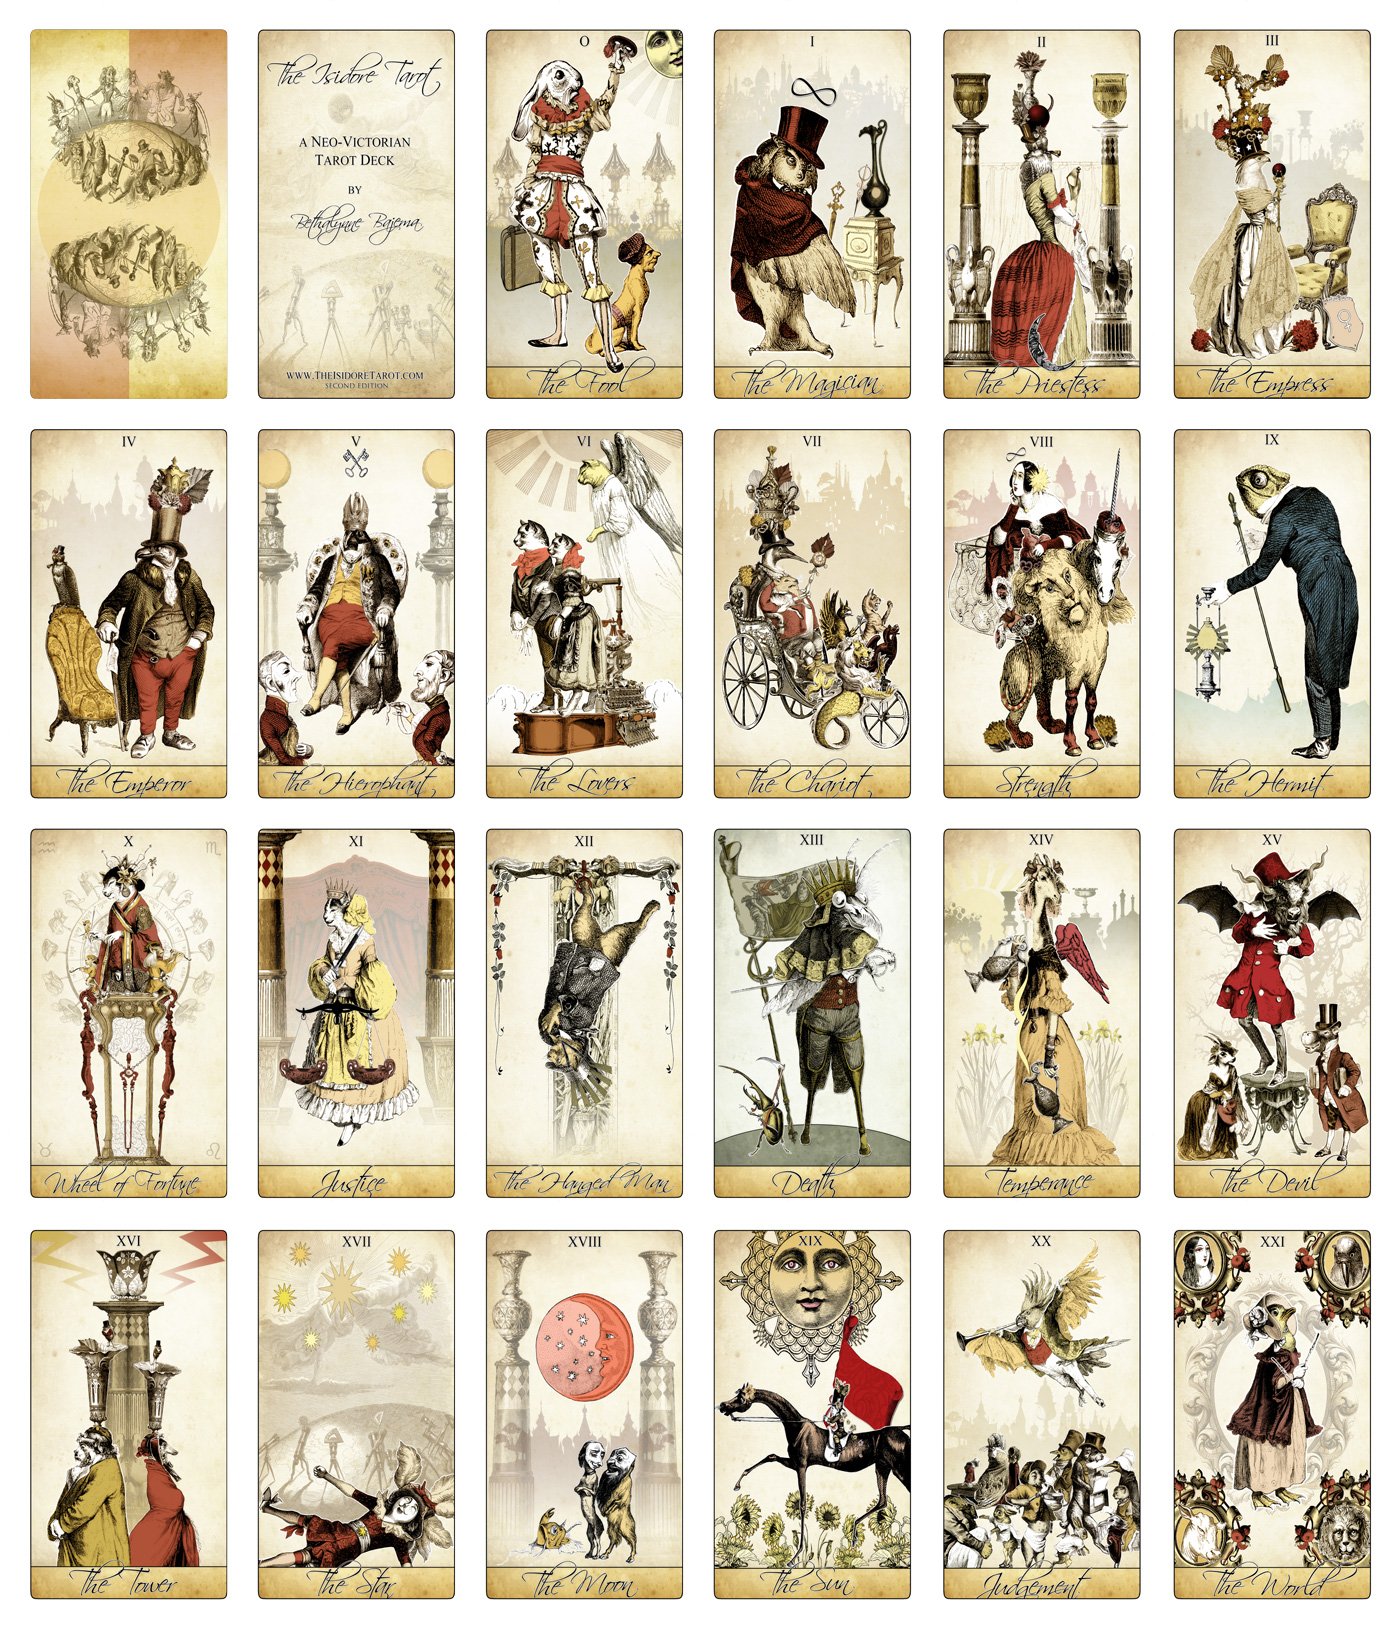 The Isidore Tarot Major Arcana fro the Attic Shoppe Trading Company